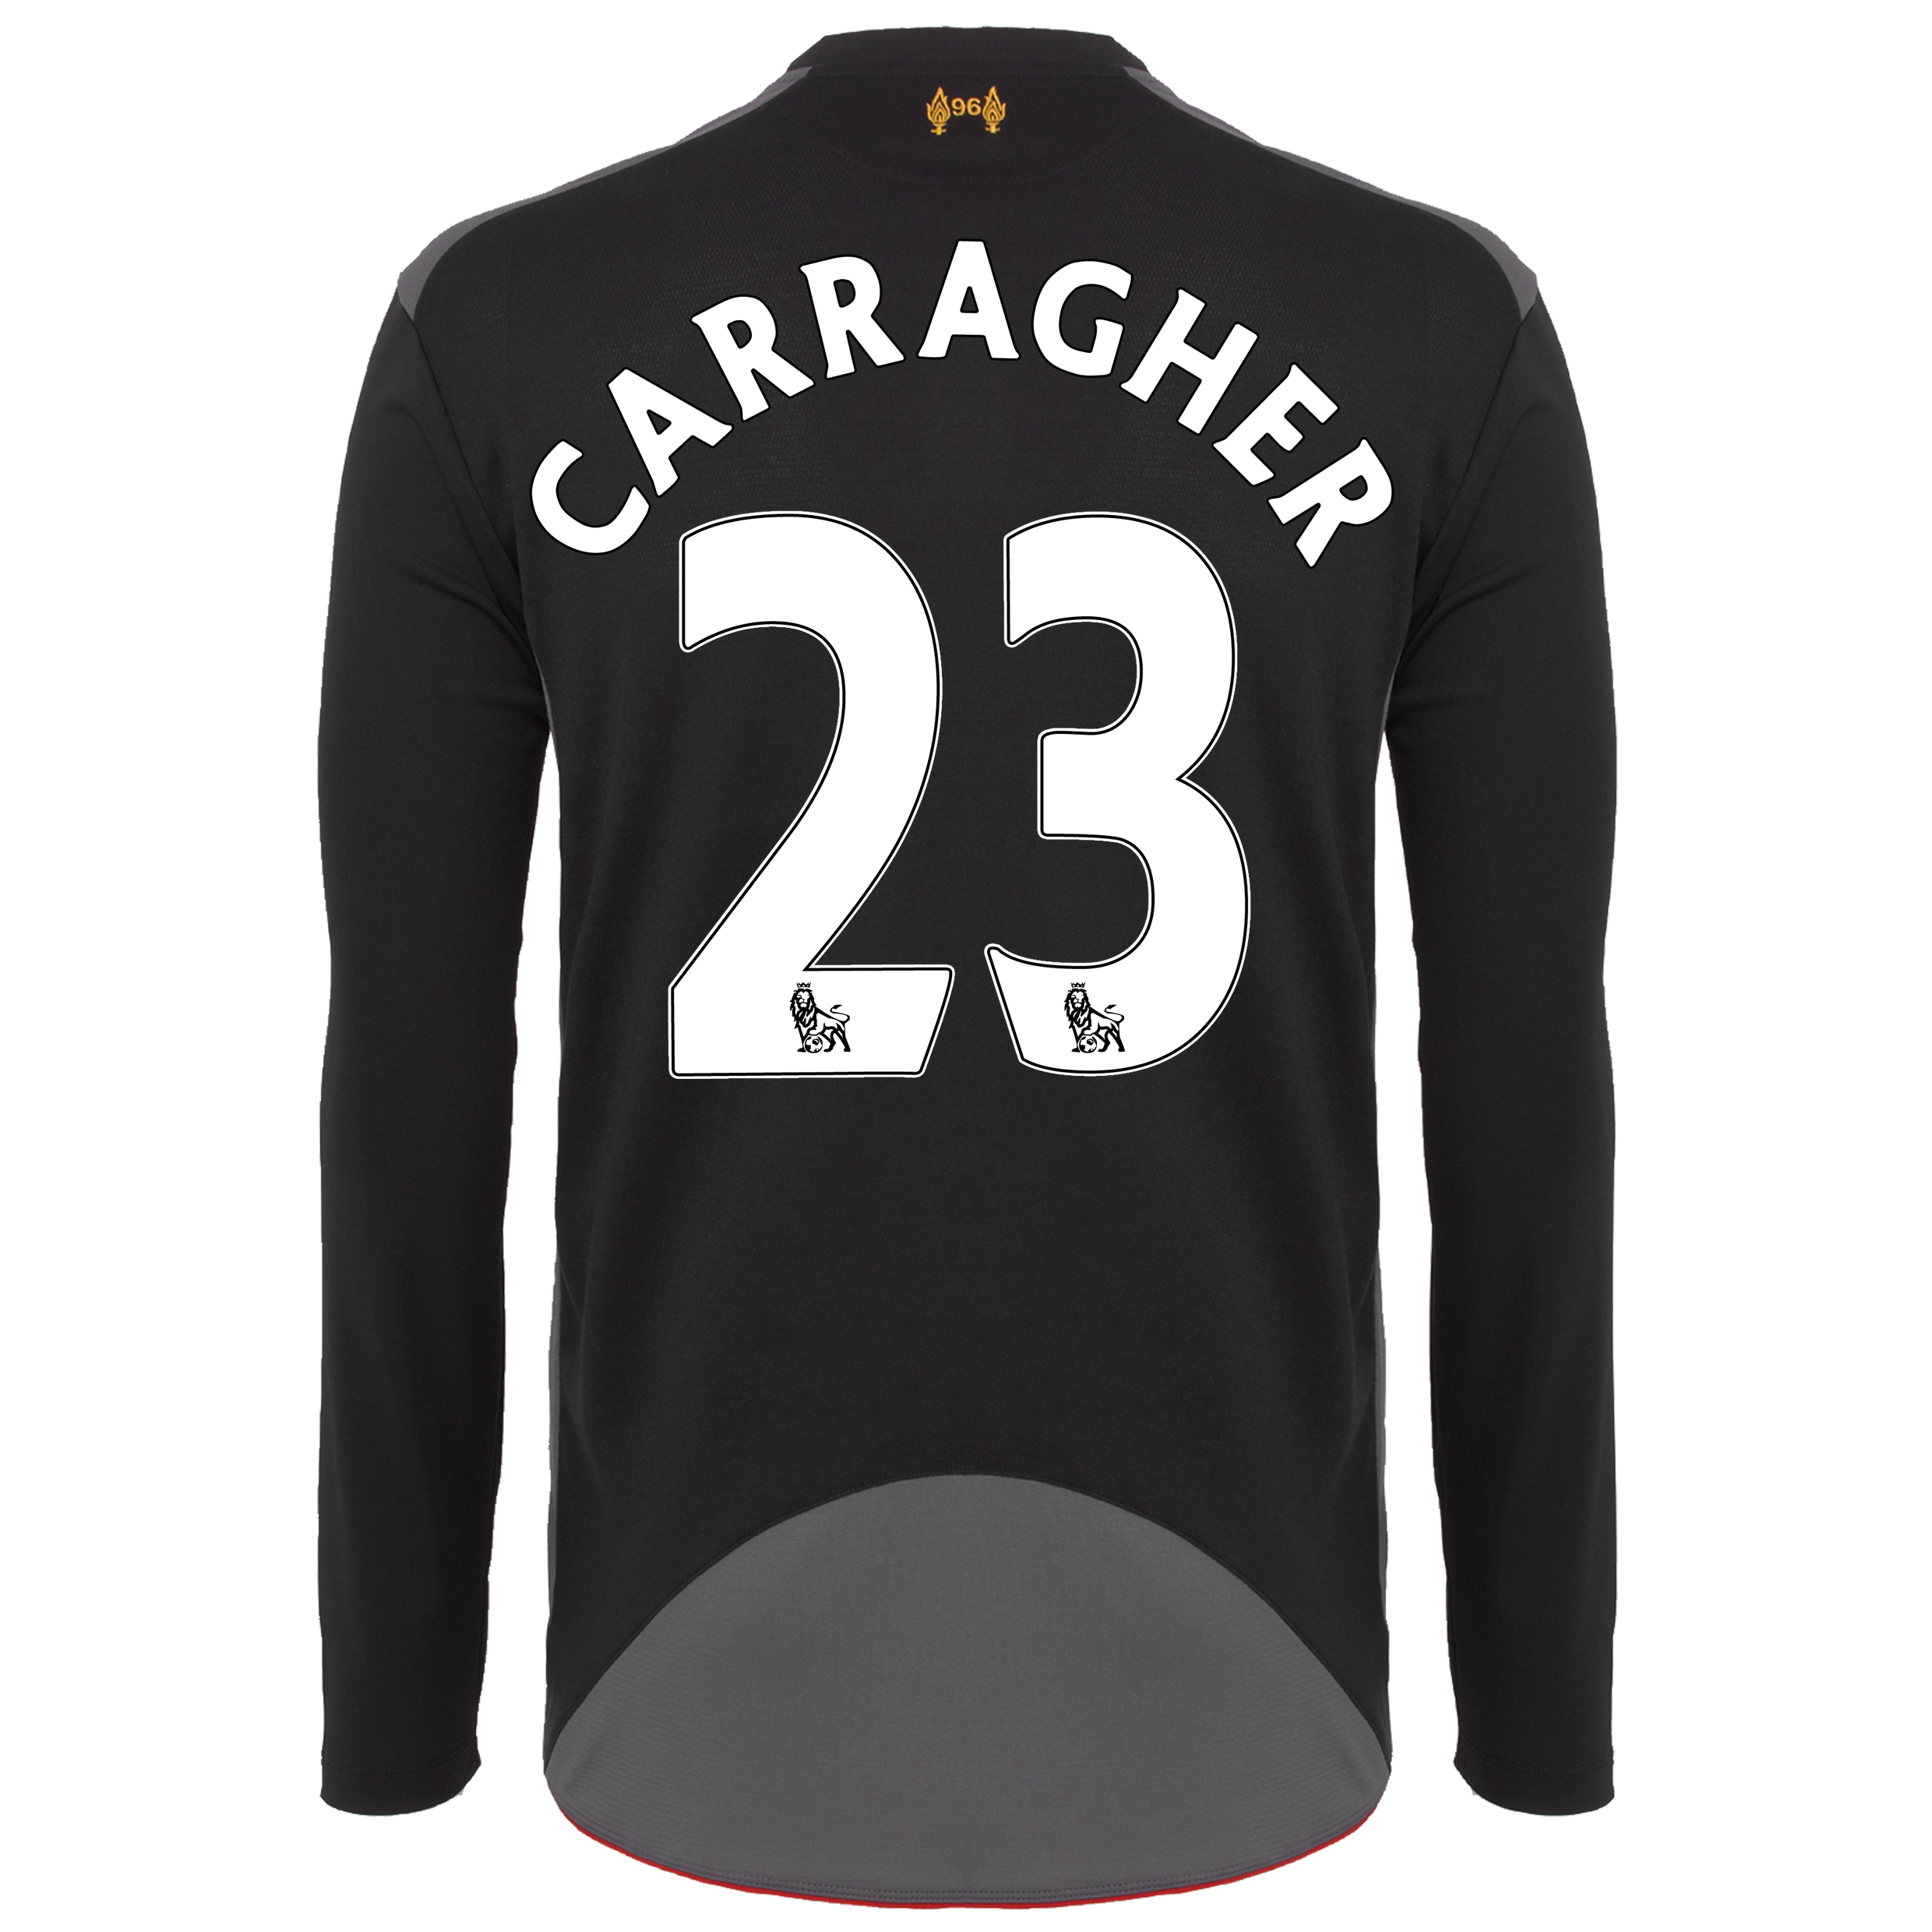 Liverpool Away Shirt 2012/13 - Long Sleeve - Kids with Carragher 23 printing